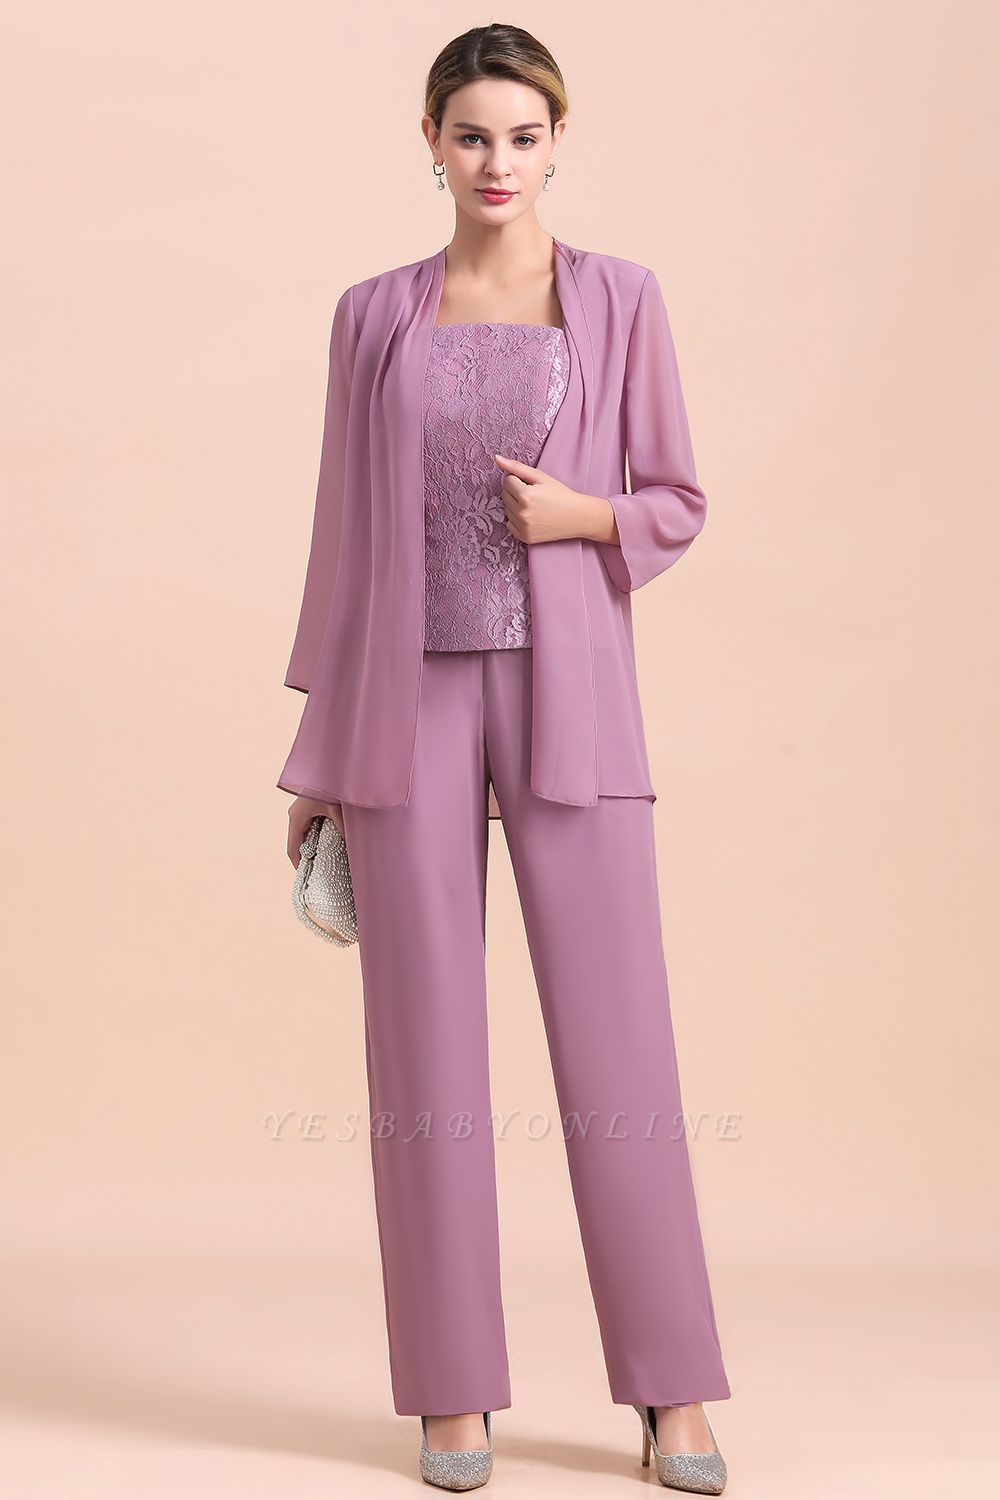 Lilac Chiffon Cheap Mother of Bride Pant Suits with Half Sleeves Jacket